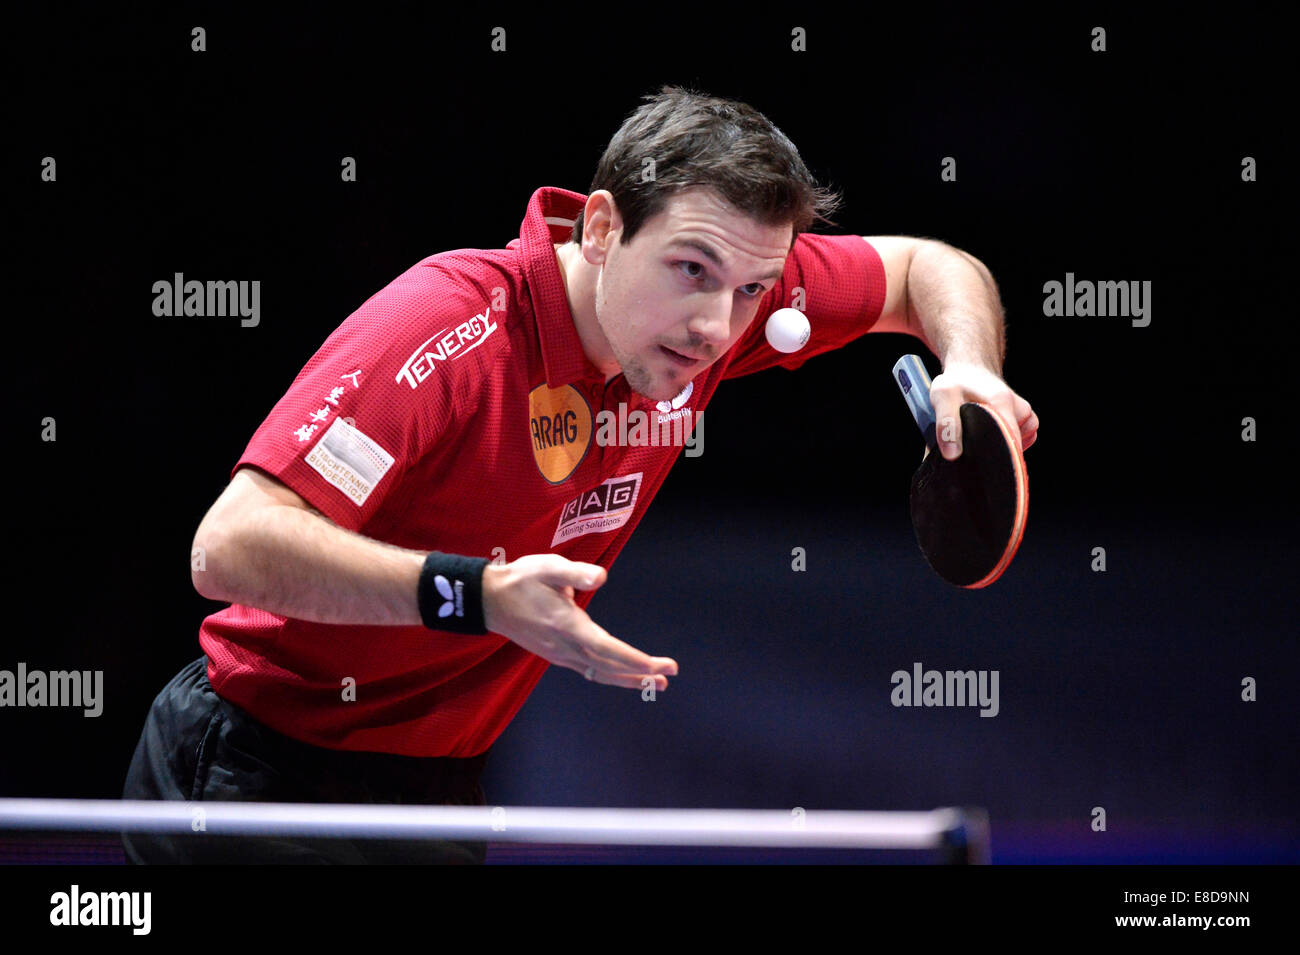 Timo Boll, GER, Tennis de Table, finale de la Coupe du stade Porsche, Stuttgart, Bade-Wurtemberg, Allemagne Photo Stock